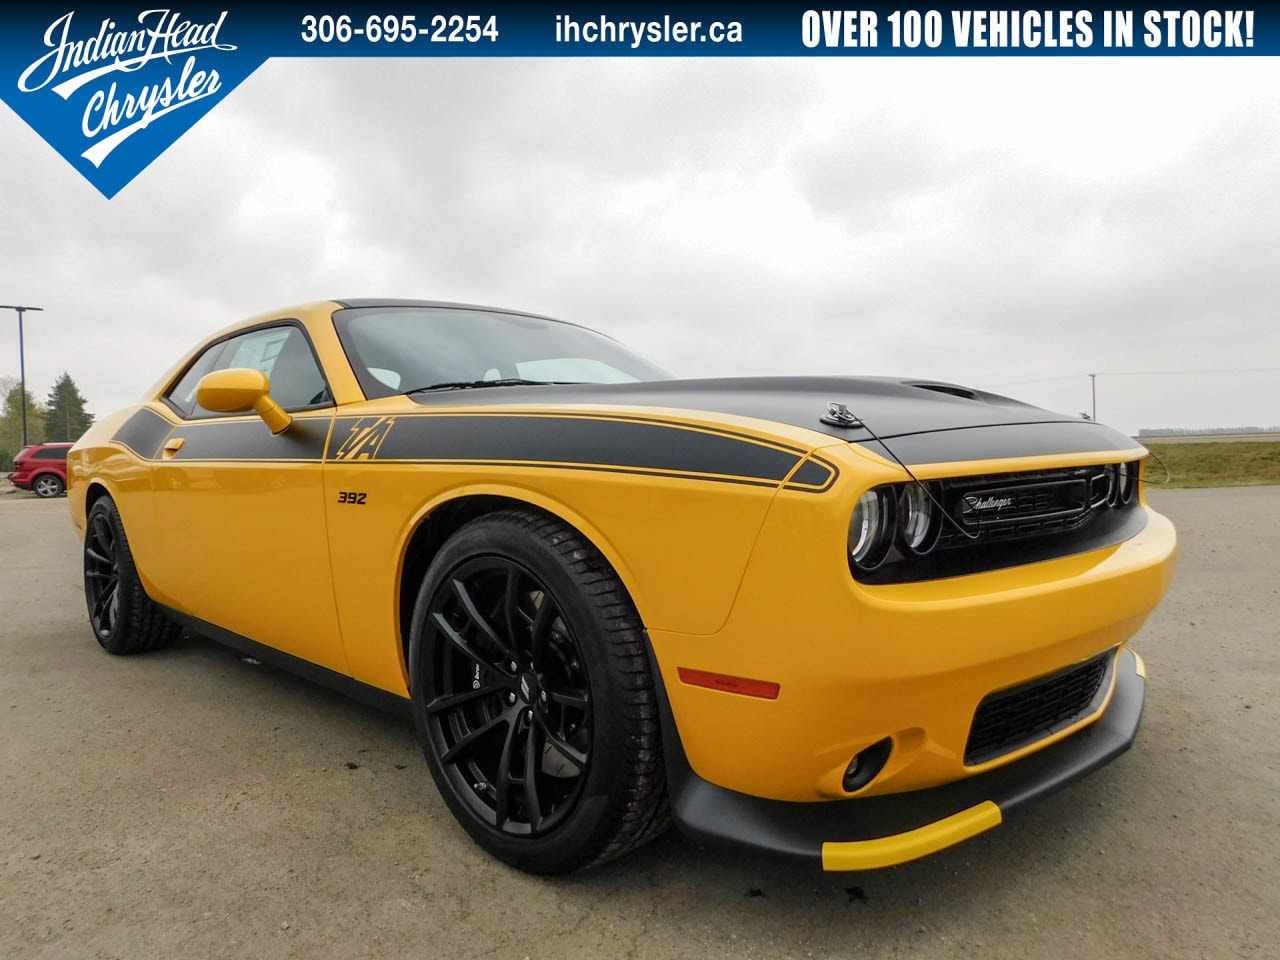 2018 Dodge Challenger T/A 392 | Leather | Nav | Sunroof Coupé